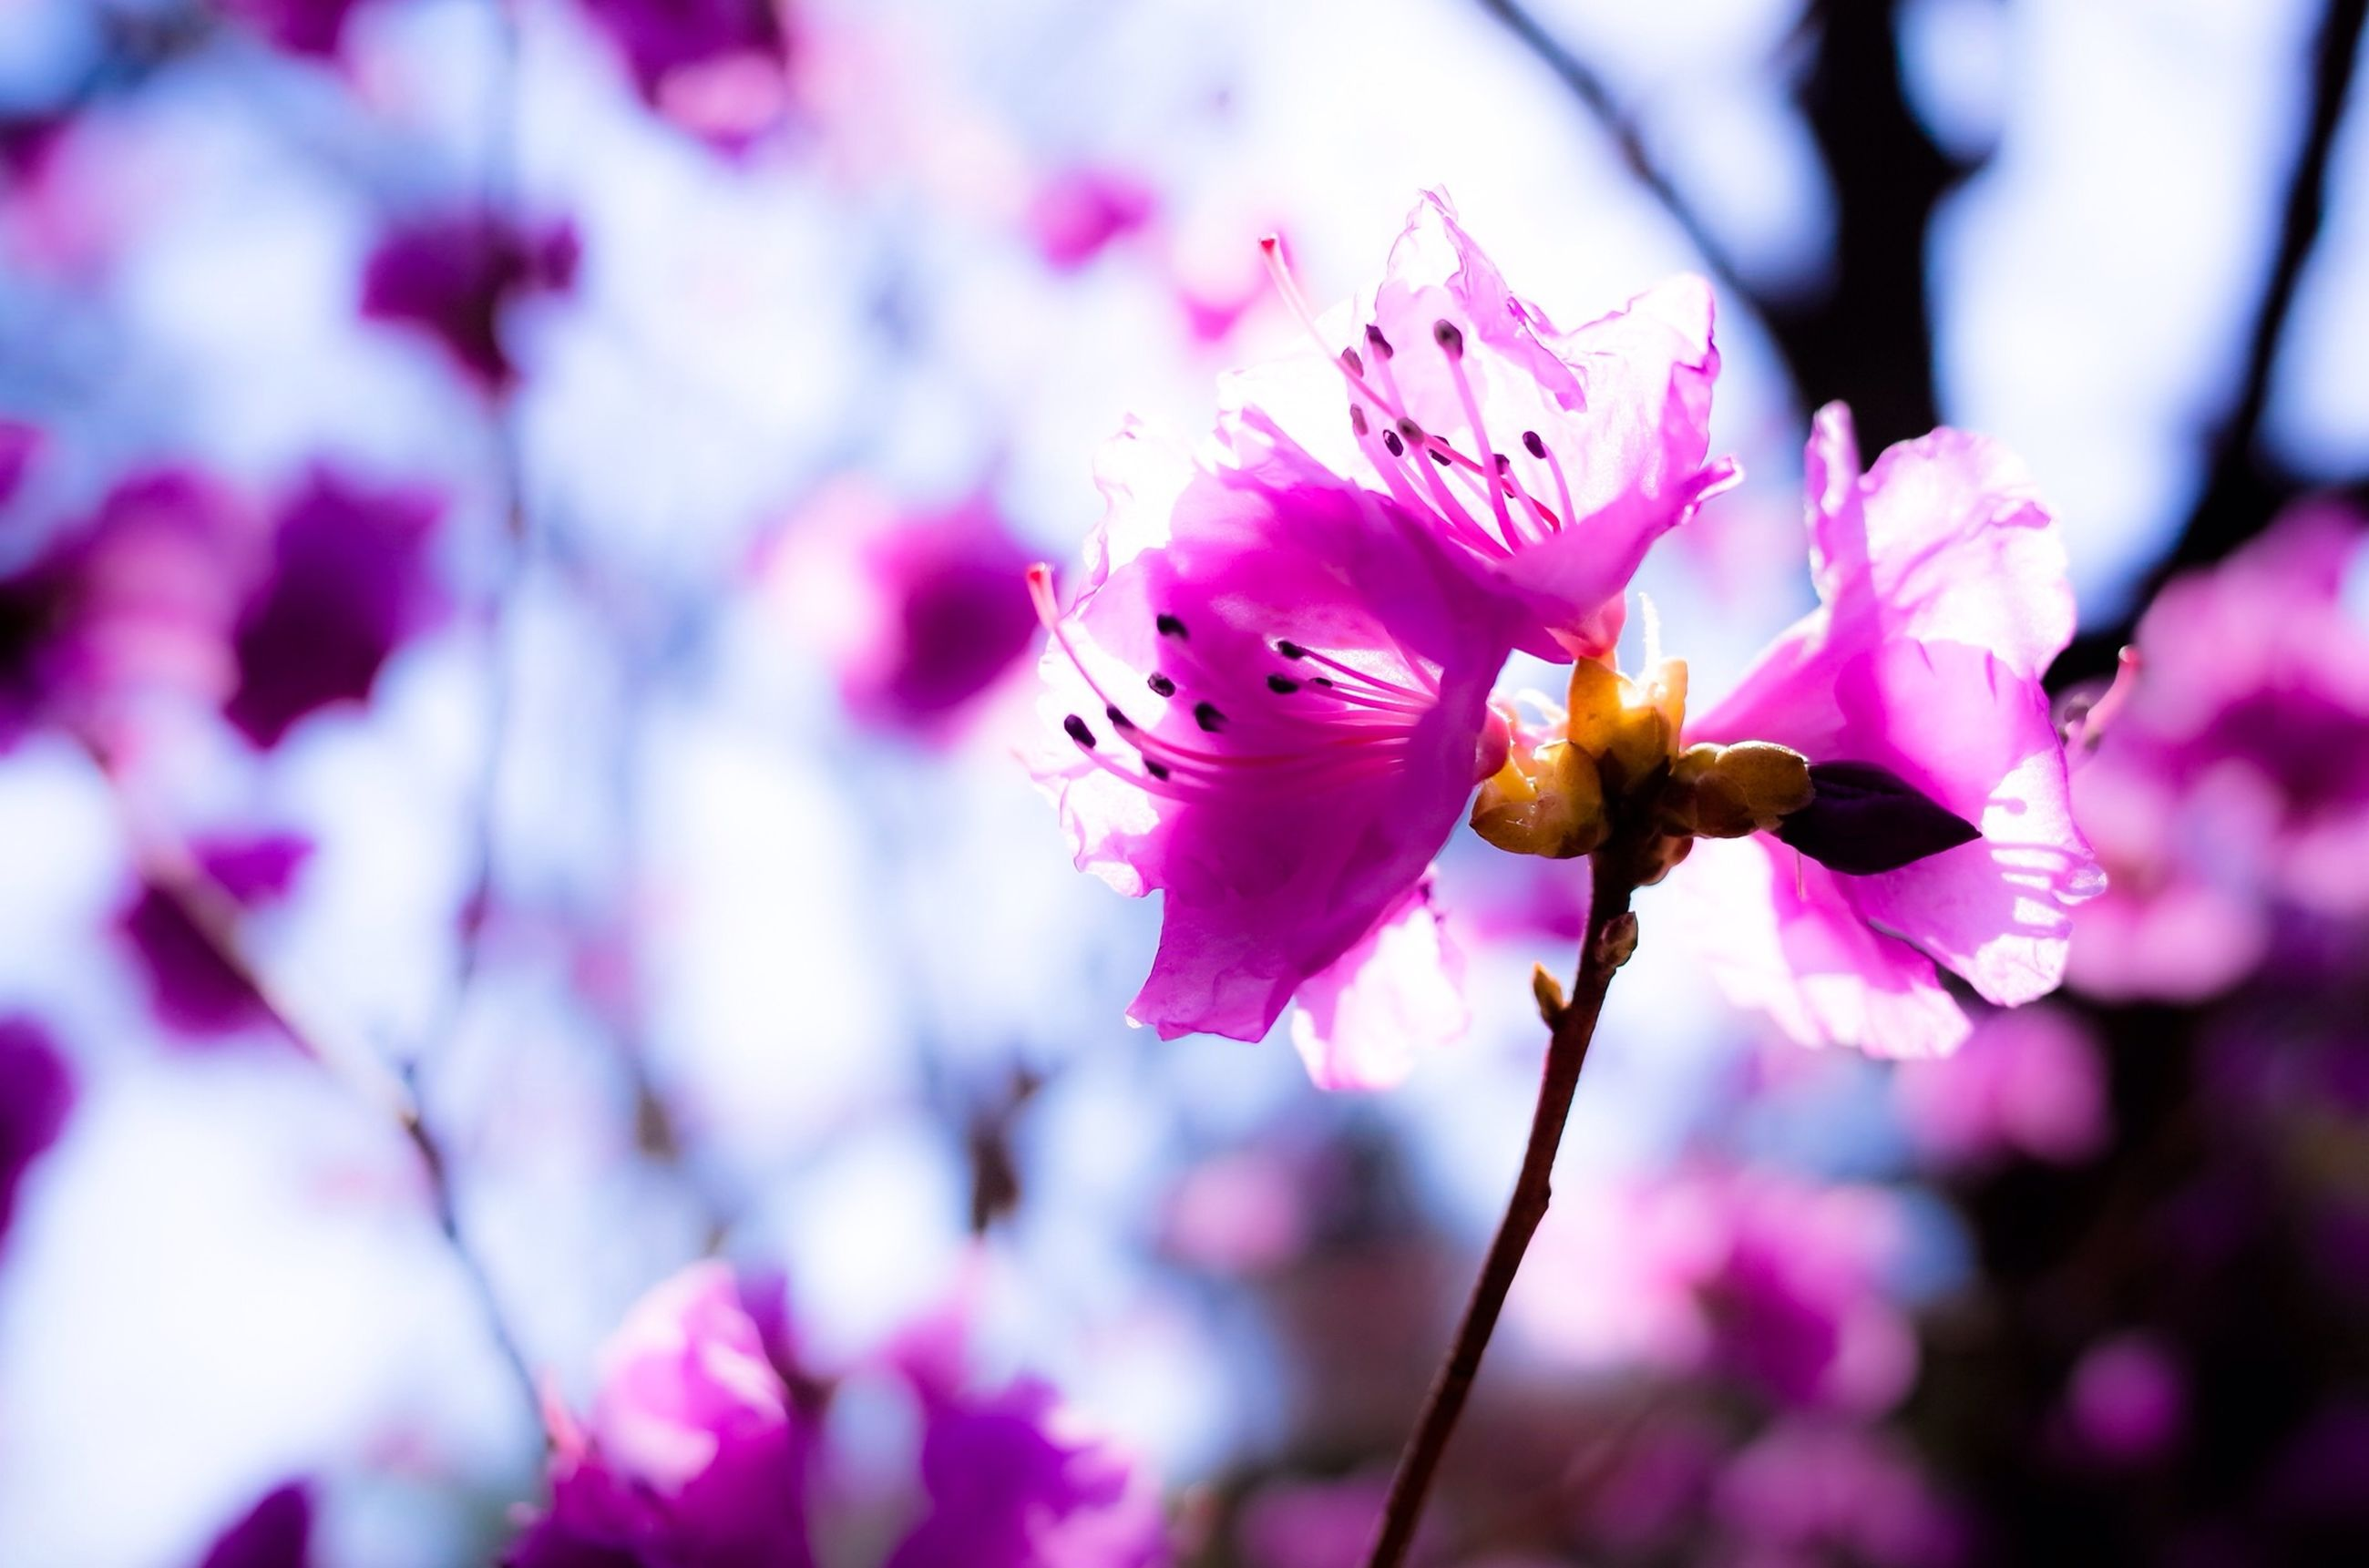 flower, freshness, fragility, growth, petal, pink color, beauty in nature, focus on foreground, branch, close-up, nature, blossom, flower head, cherry blossom, in bloom, blooming, tree, springtime, stamen, selective focus